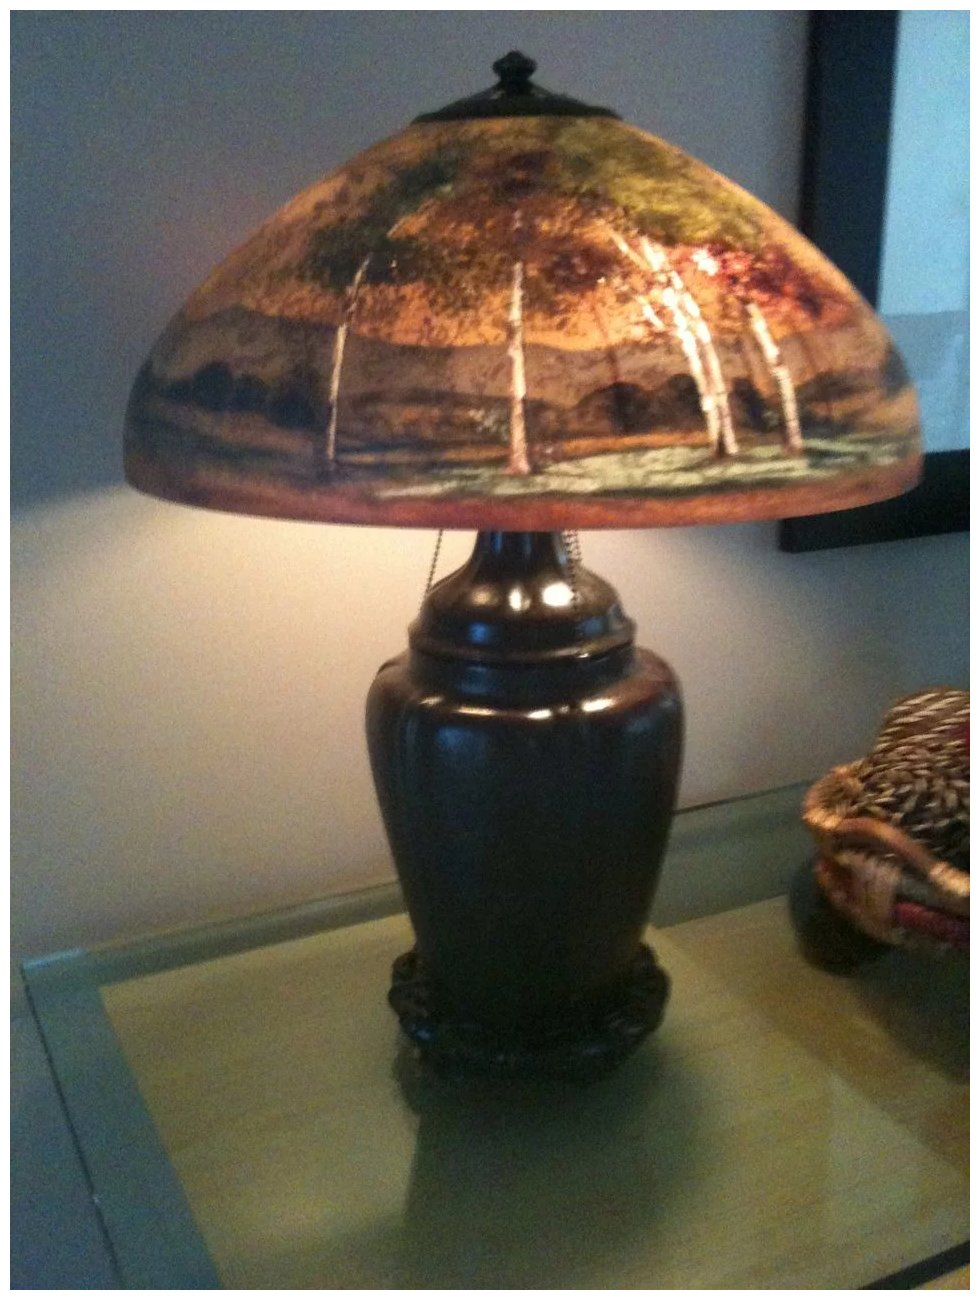 1 Handel Lamp Reverse Painted Scenic Lamp Number 7118a